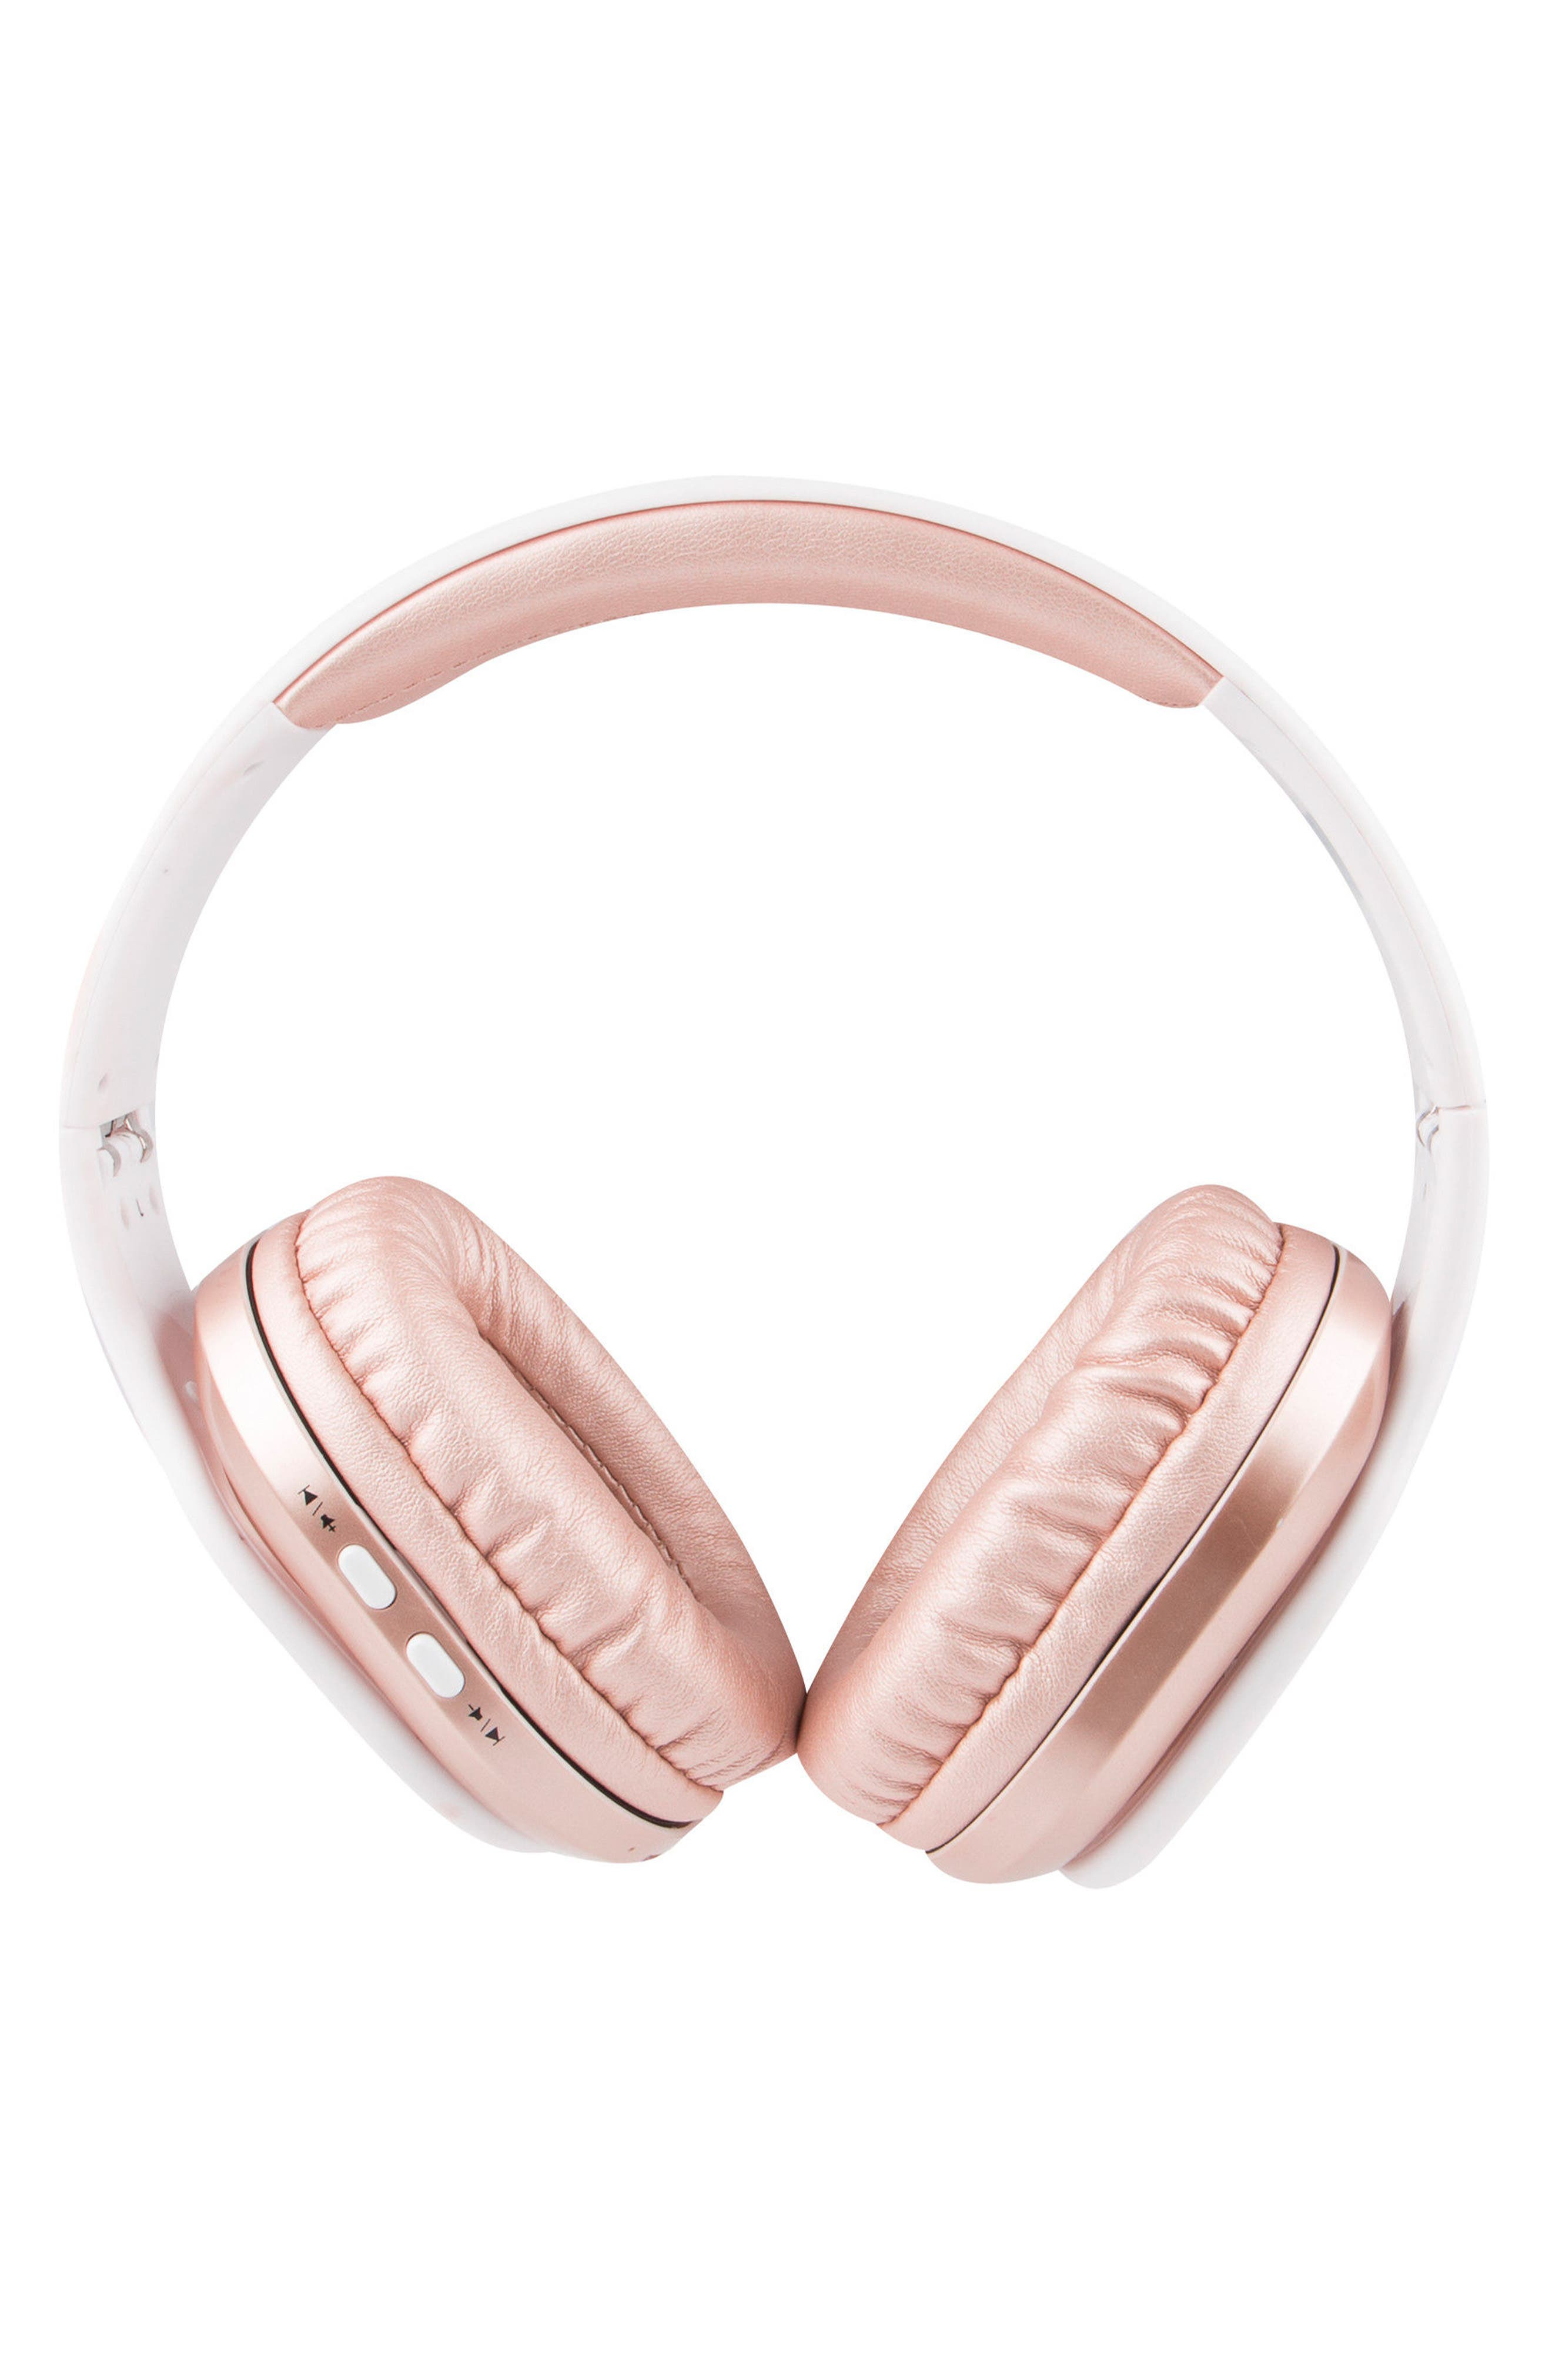 Evolution 2 Wireless Headphones,                             Alternate thumbnail 3, color,                             Rose Gold